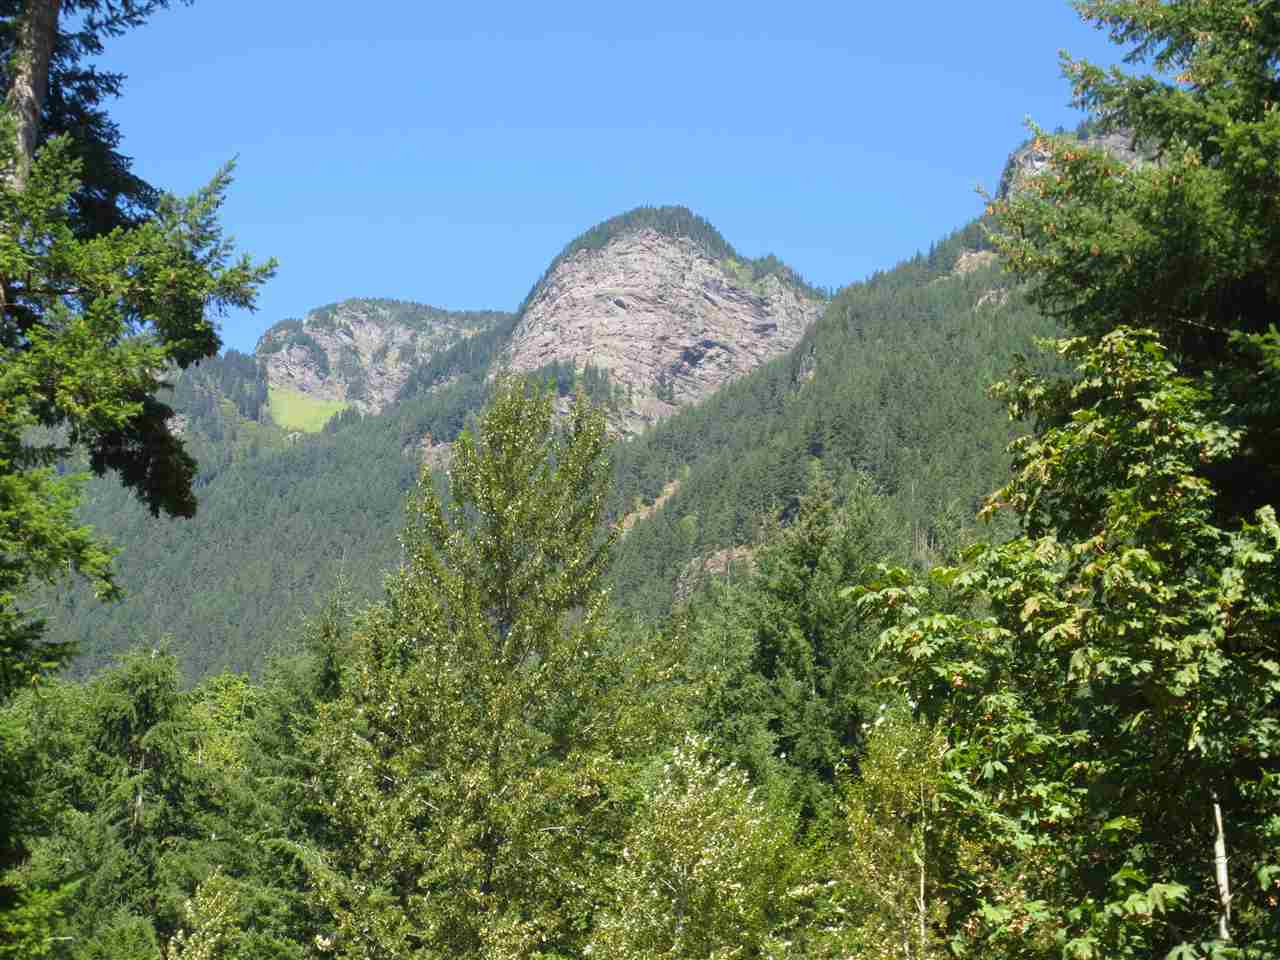 Need somewhere to escape to? Amazing 2.5 acre property close to the Coquihalla River & Kawkawa Lake. Perfect property for a small hobby farm &/or horses. Property is zoned Country Residential so build your dream home here with garage/shop separate. Level building sites that have sun all day & panoramic mountain views. 302 ft. well on property & has geo-tech report available. Fish the Coquihalla River, bring your quad, boat & snowmobile & enjoy the recreational paradise this property is set in. Call today to view.